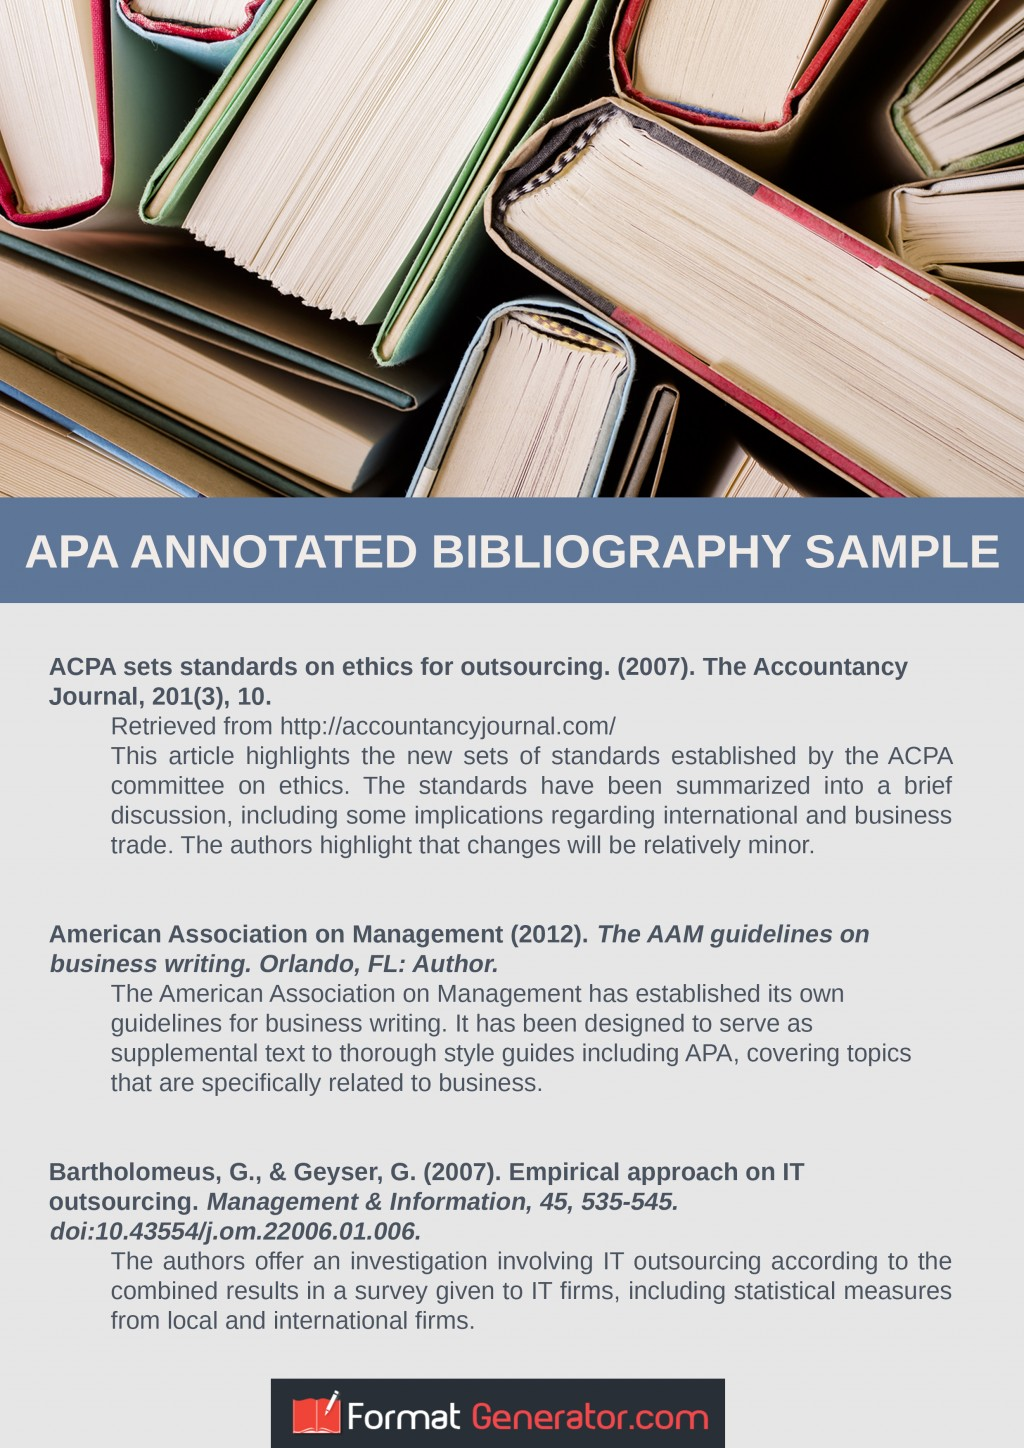 023 Free Online Research Paper Generator Apa Annotated Bibliography Outstanding Outline Large